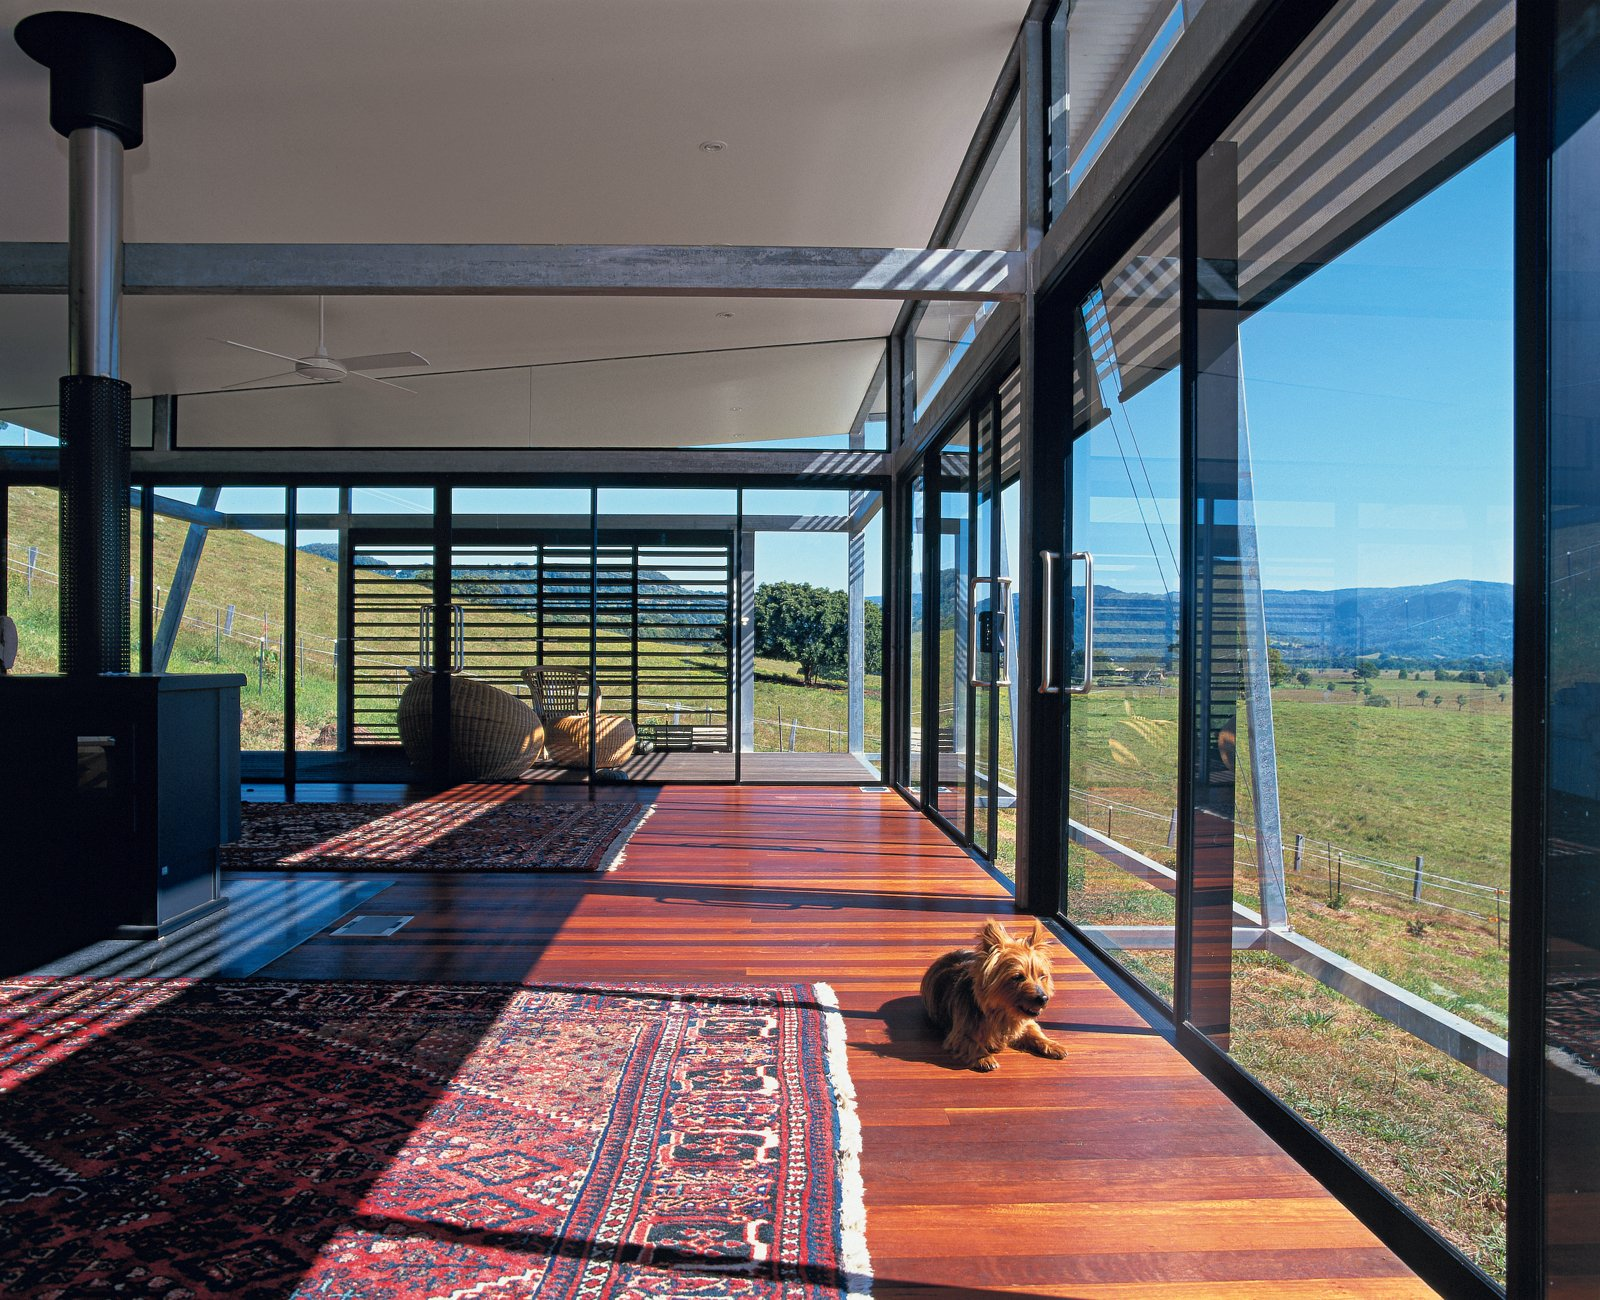 The home's stretched veranda form is a model of economic and democratic design of extruded and repeated elements. It's no accident that this generates major cost savings, thermal efficiencies, and is generous in shared amenities for all residents. The terrier, however, is mostly interested in the view from his eye level.